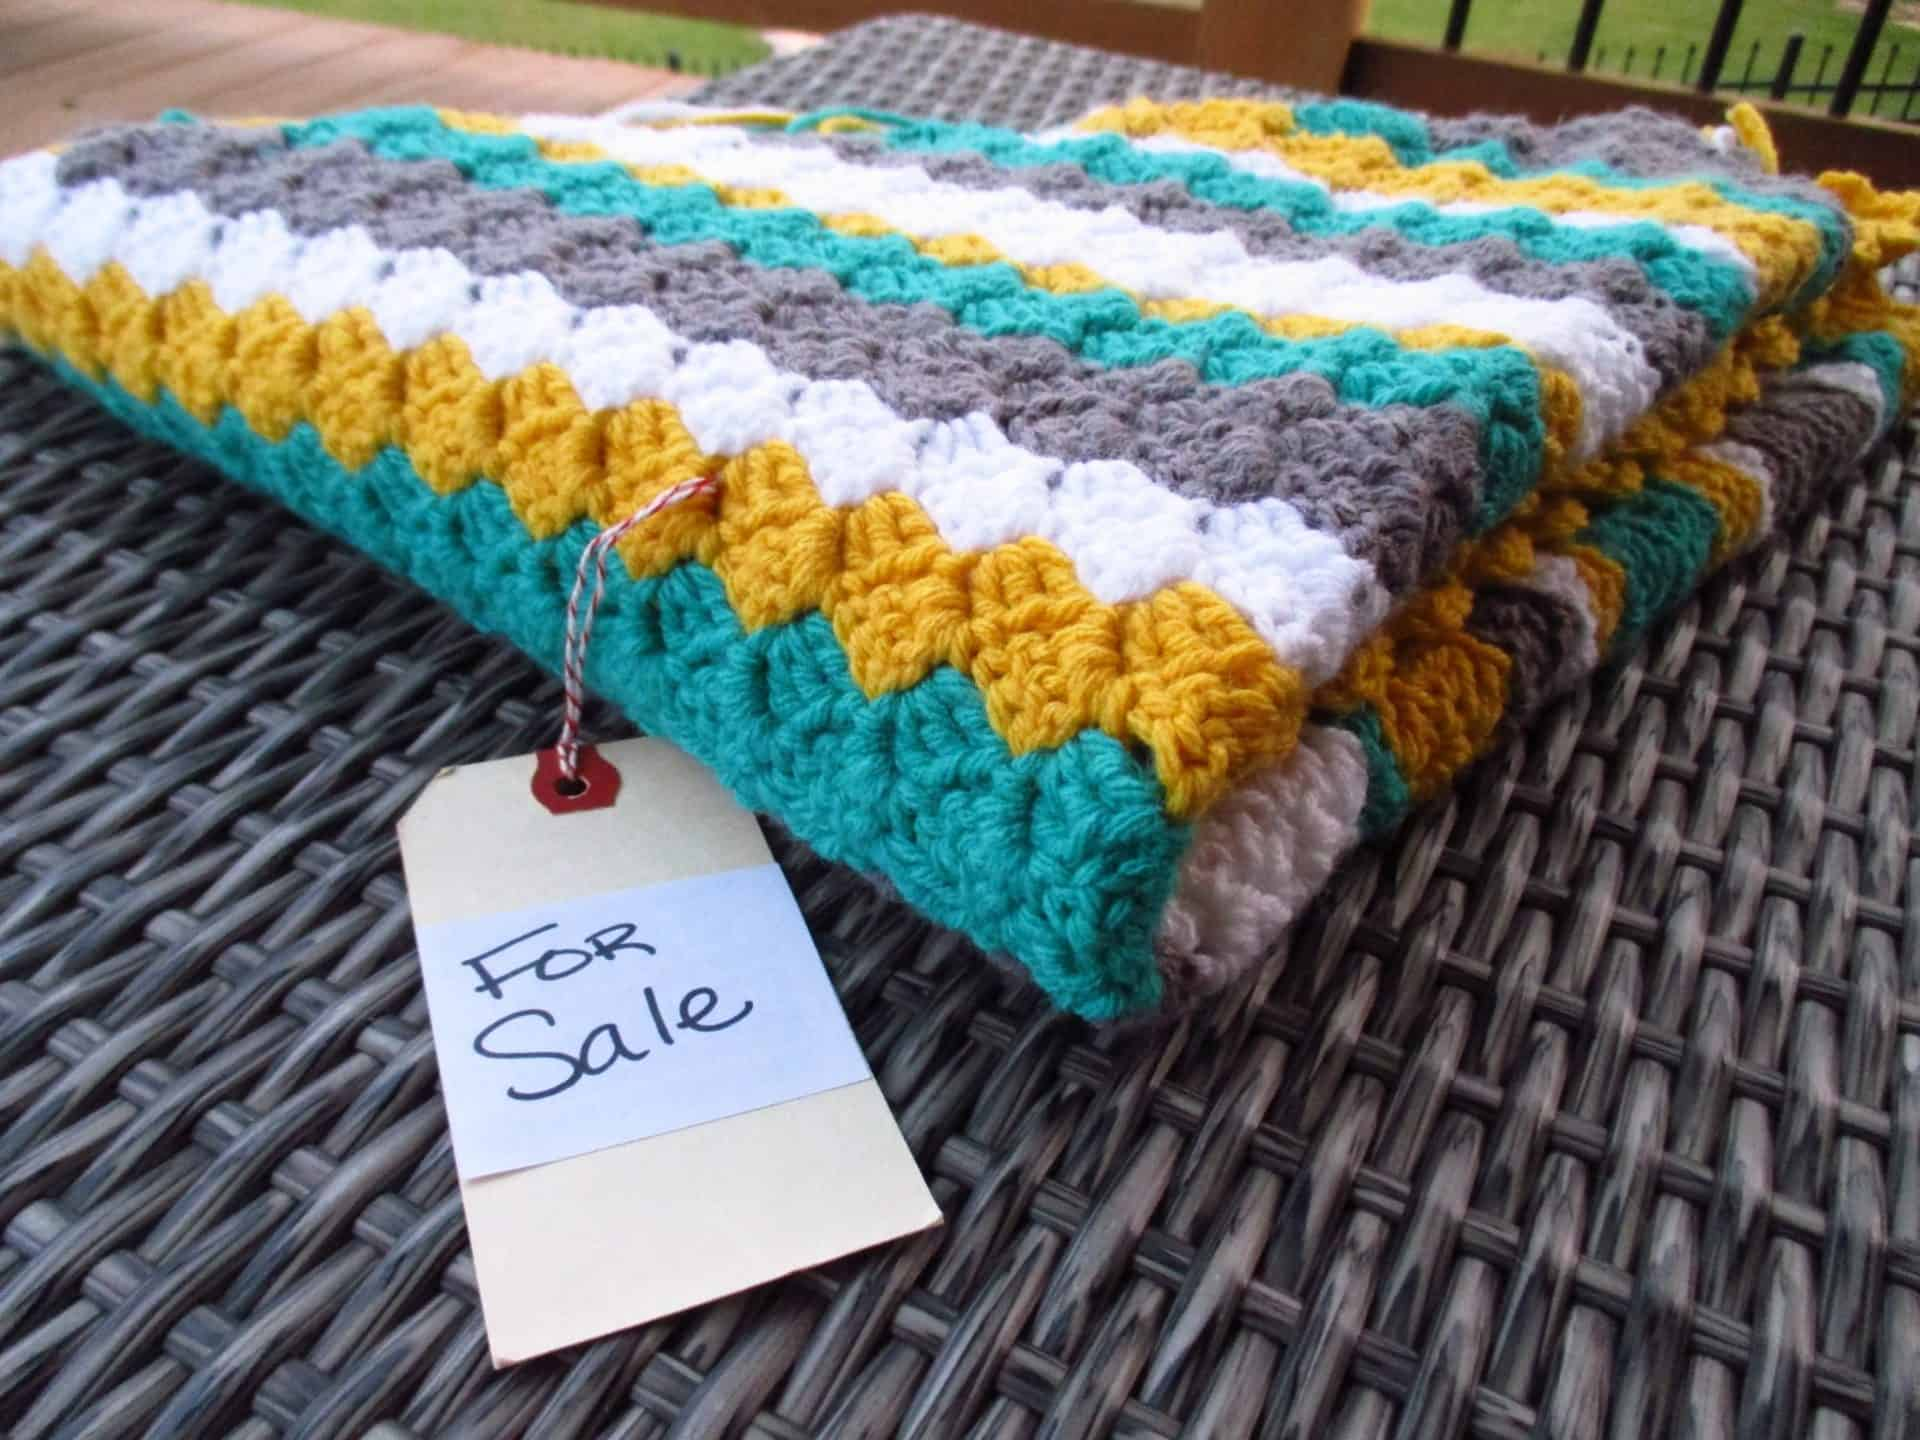 Tips For Pricing Handmade Items To Make Money